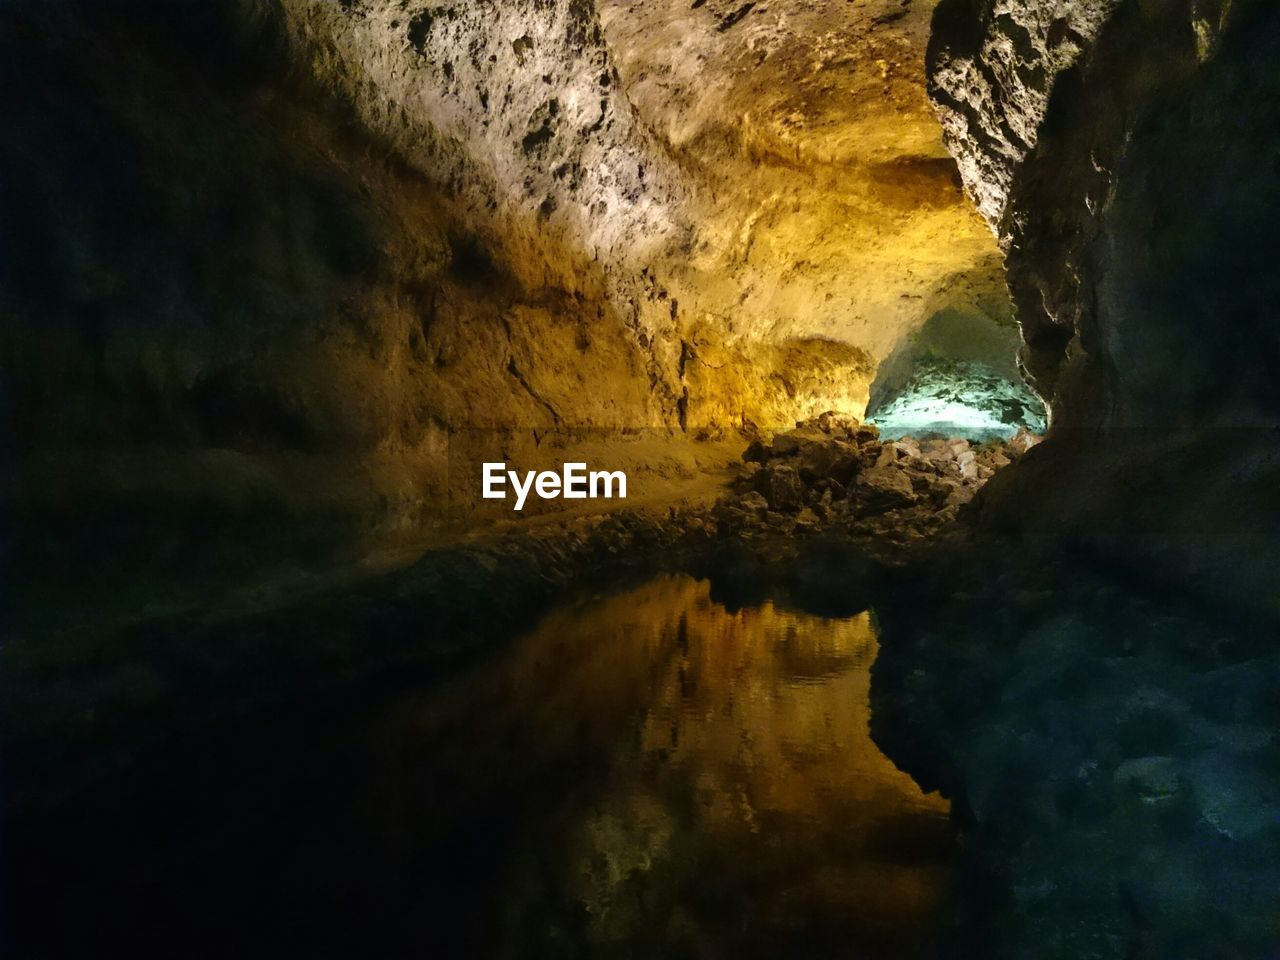 Water in illuminated cave